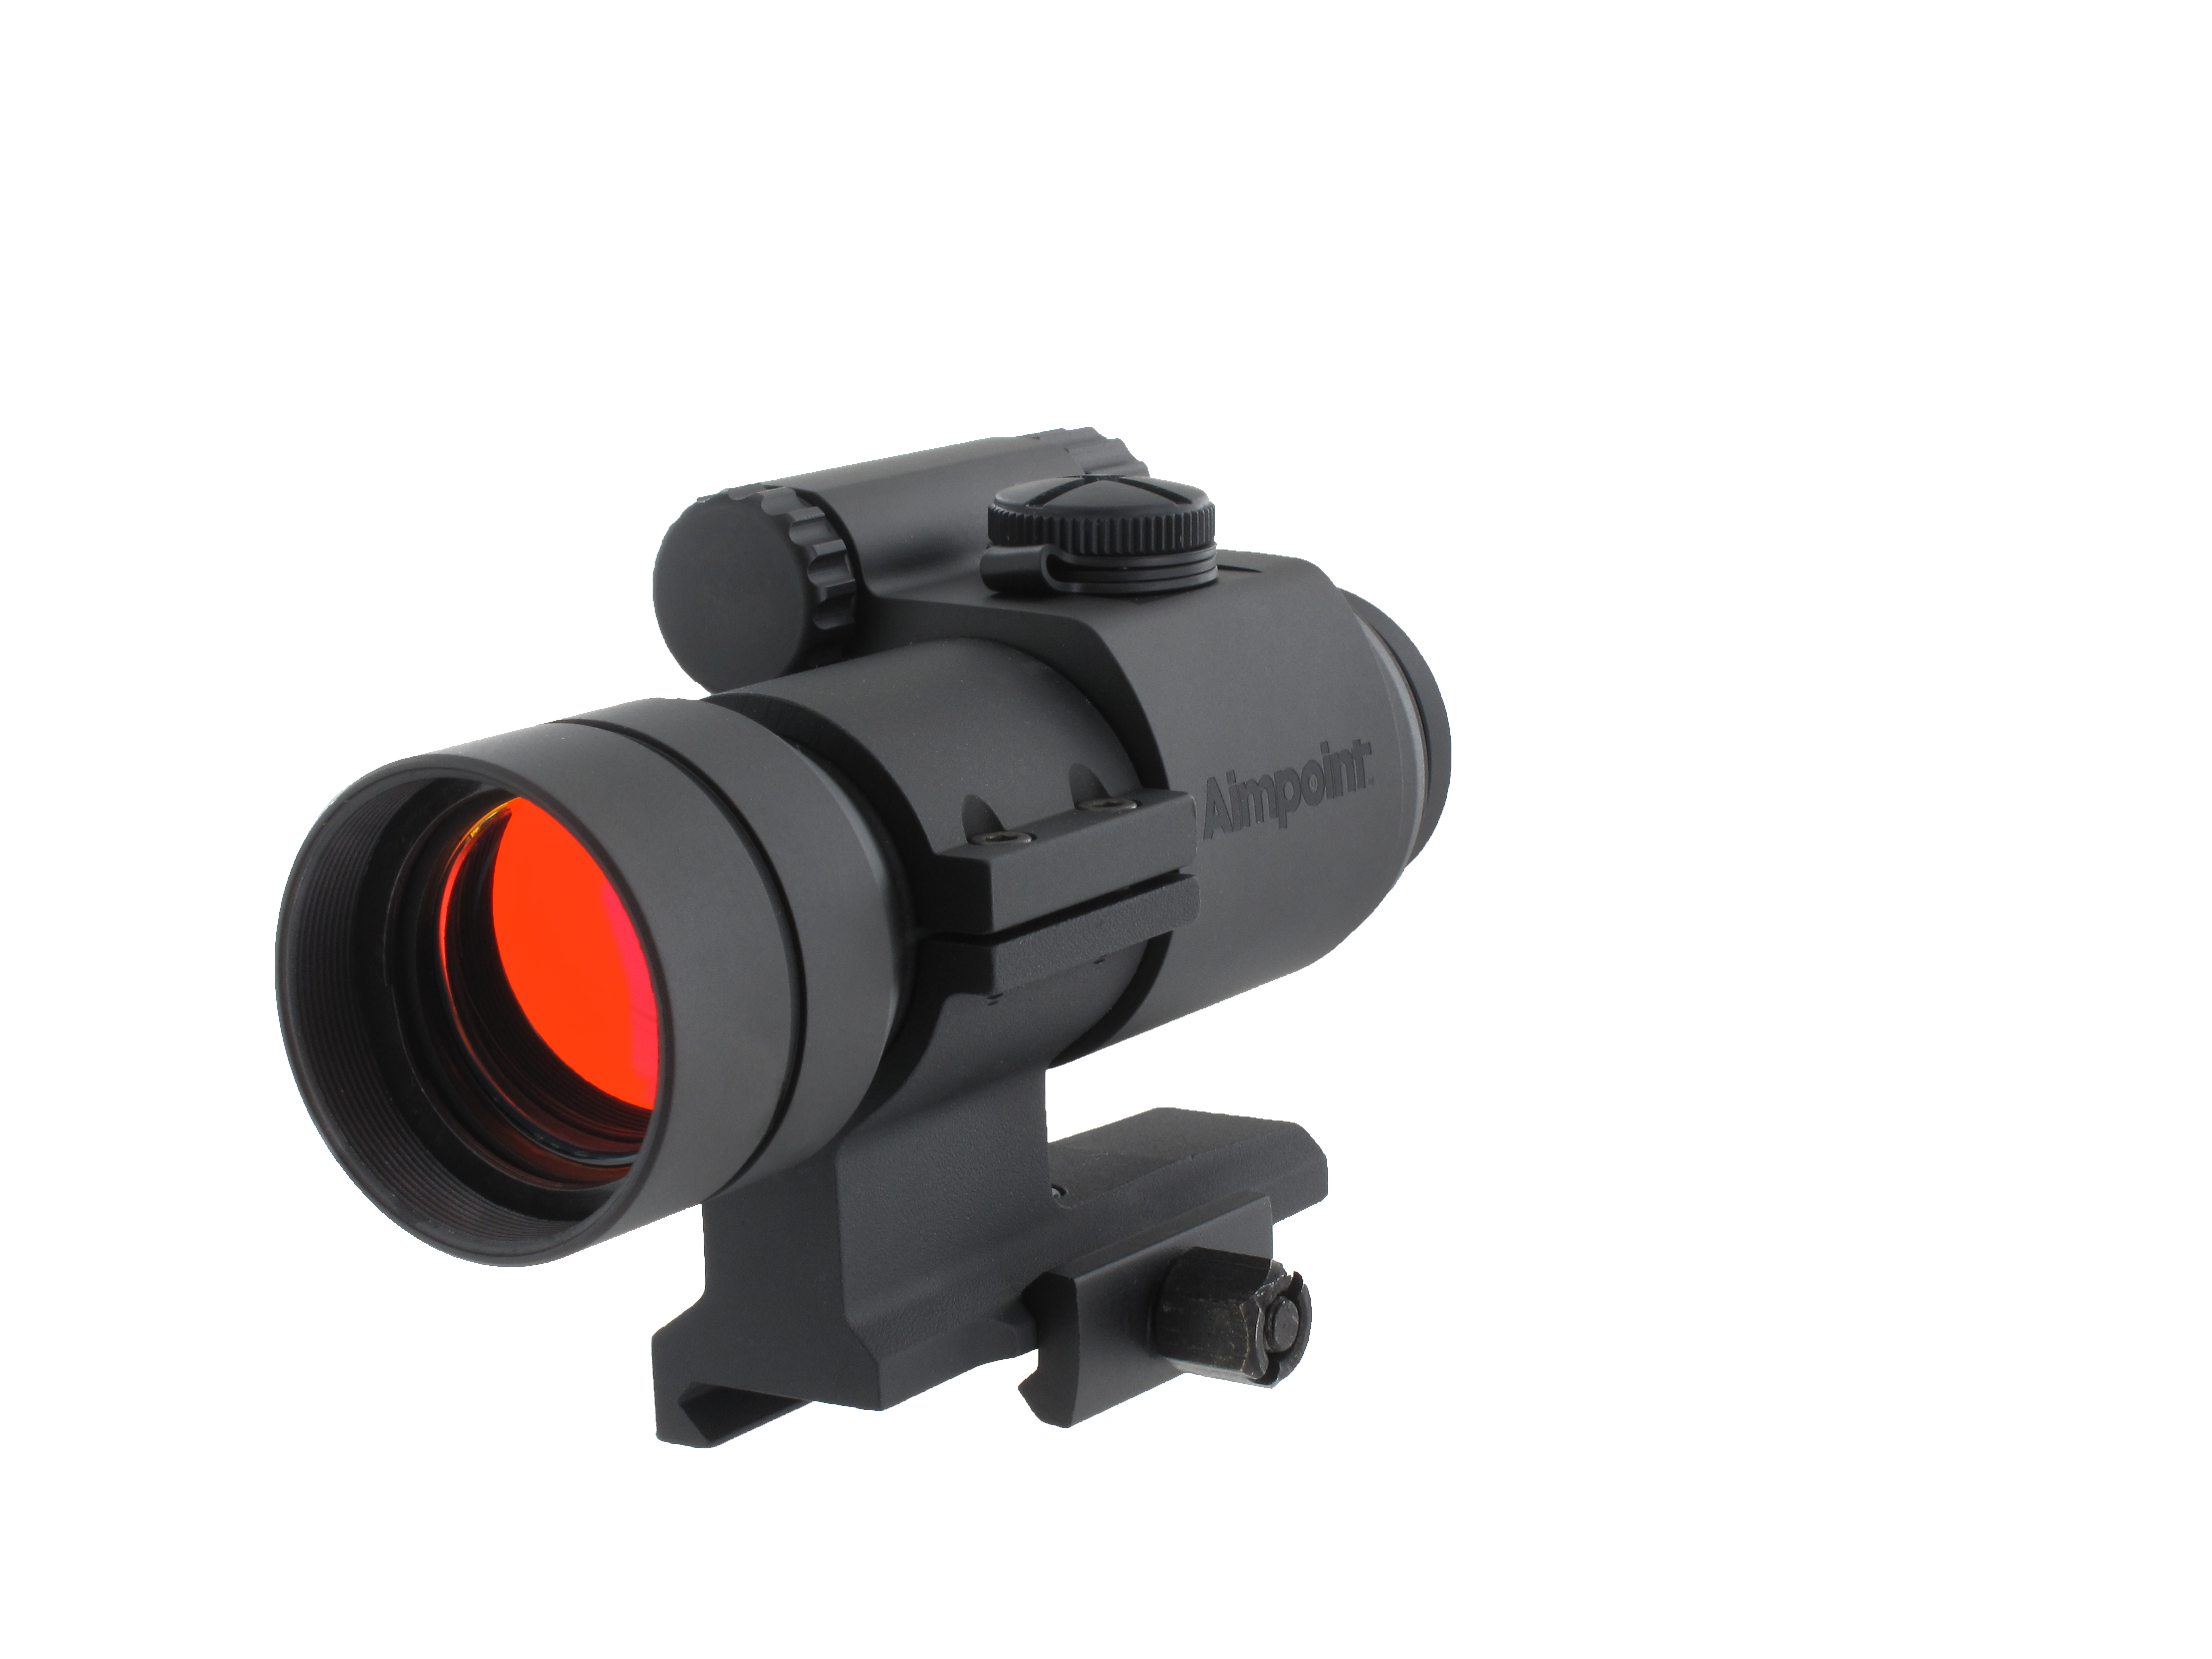 Press Release: AIMPOINT LAUNCHES NEW CARBINE OPTIC